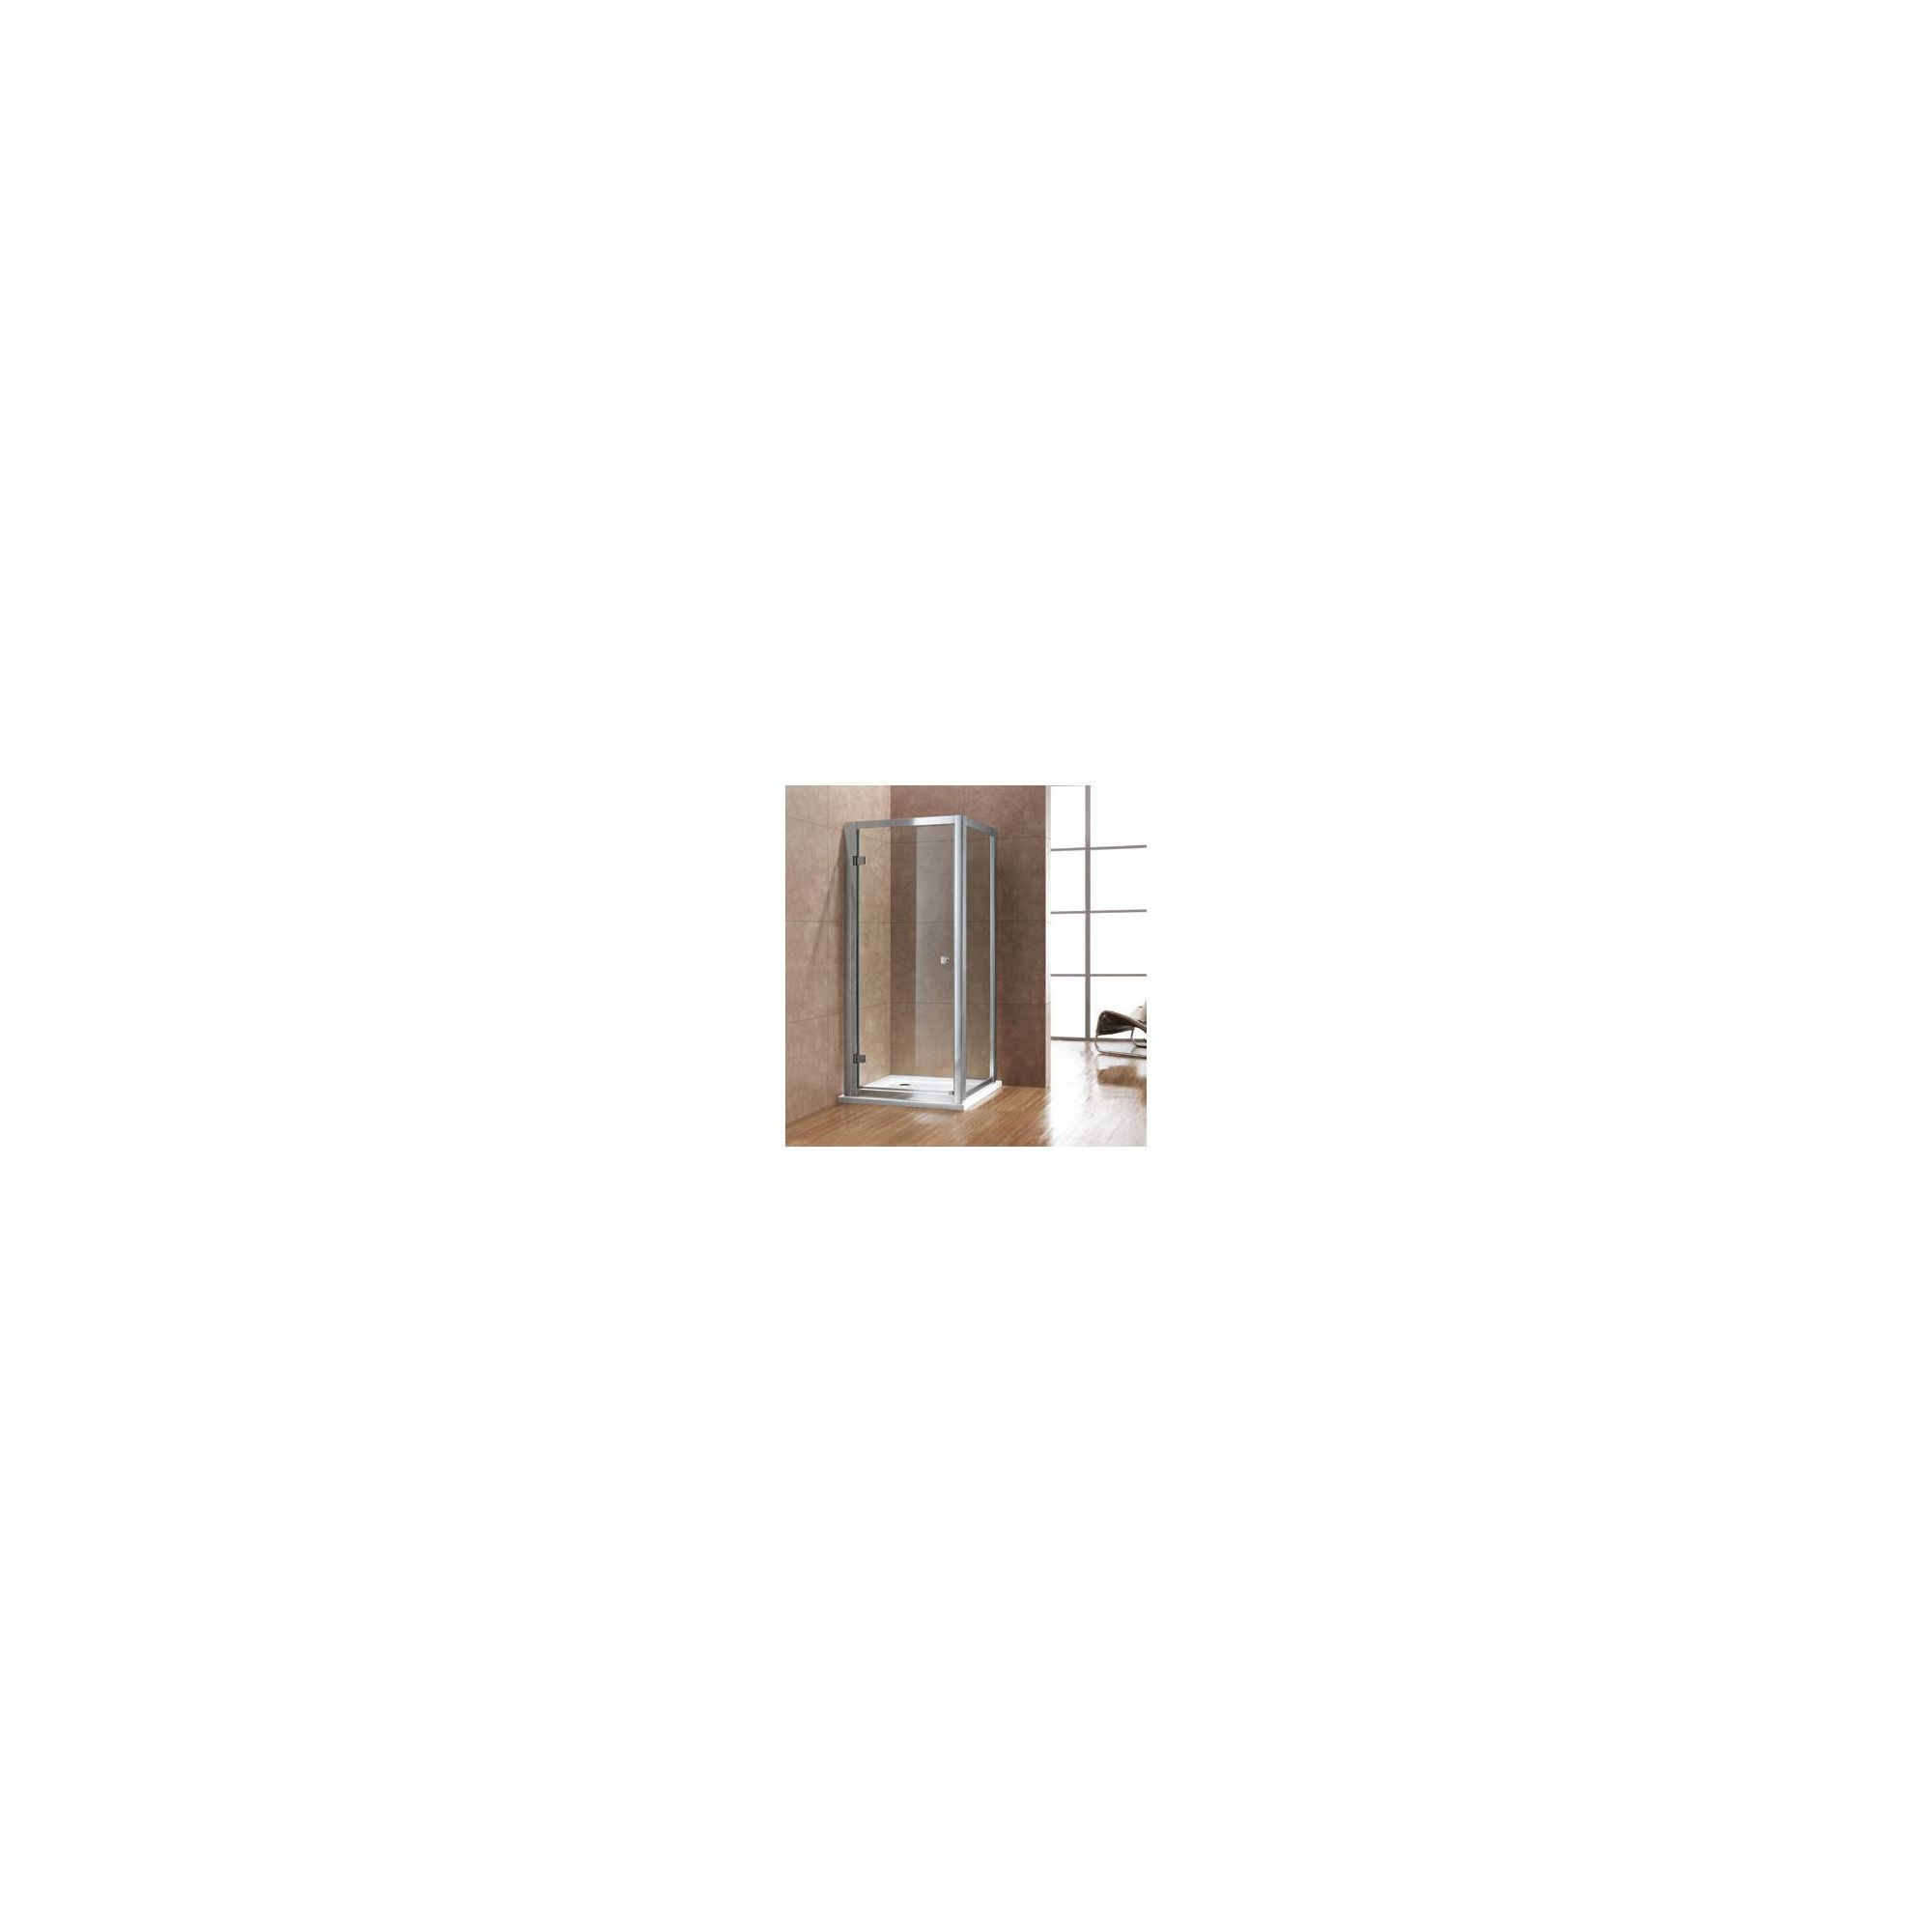 Duchy Premium Hinged Door Shower Enclosure, 800mm x 800mm, 8mm Glass, Low Profile Tray at Tesco Direct